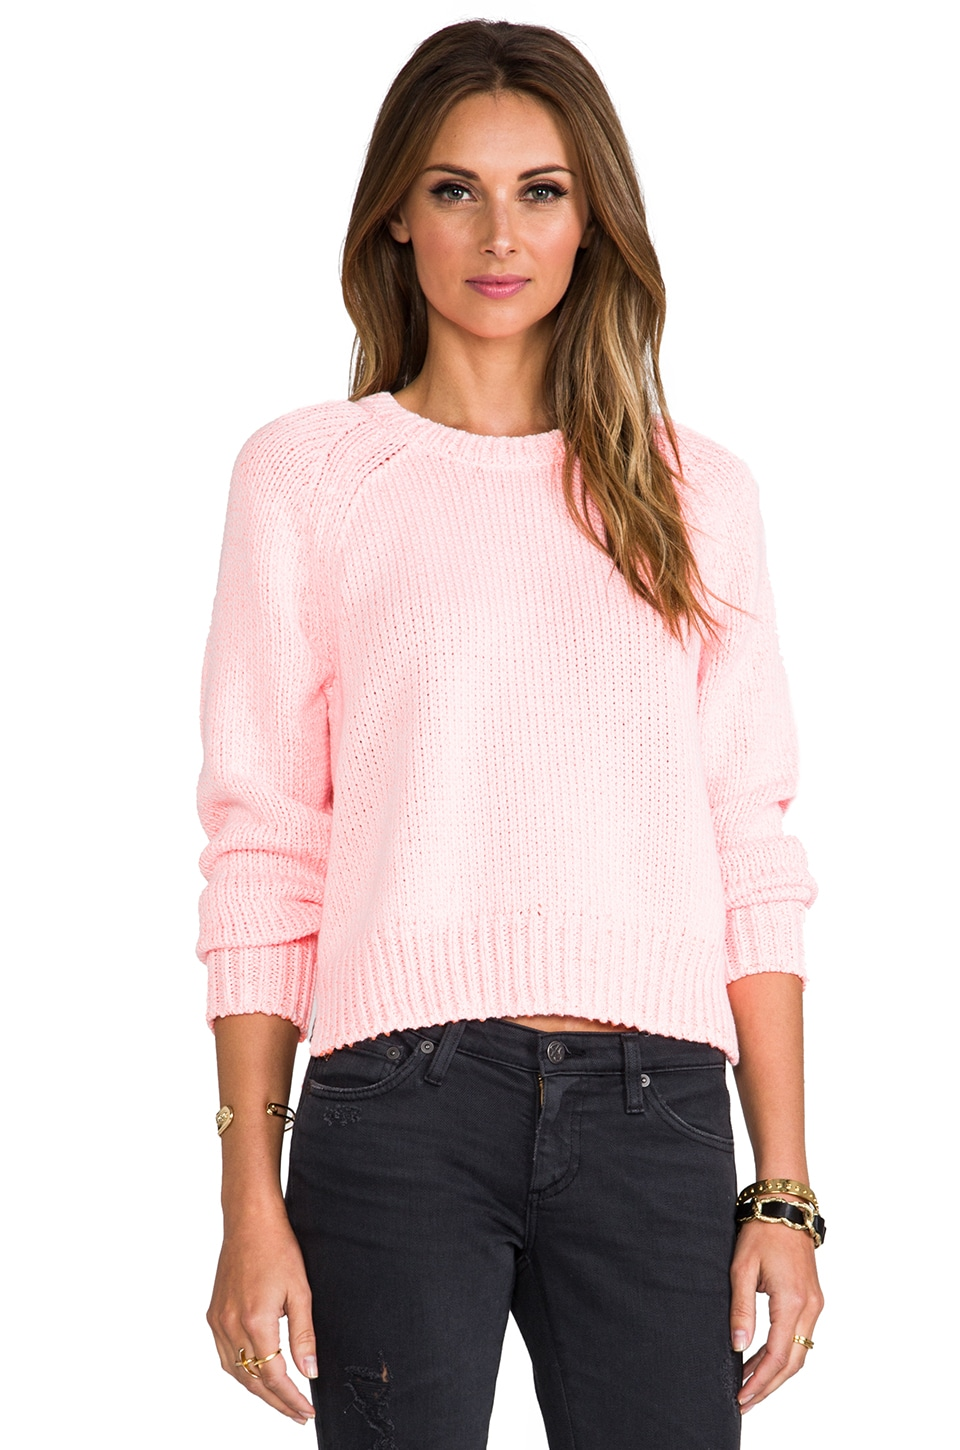 T by Alexander Wang Chainette Crewneck Cropped Pullover in Persimmon